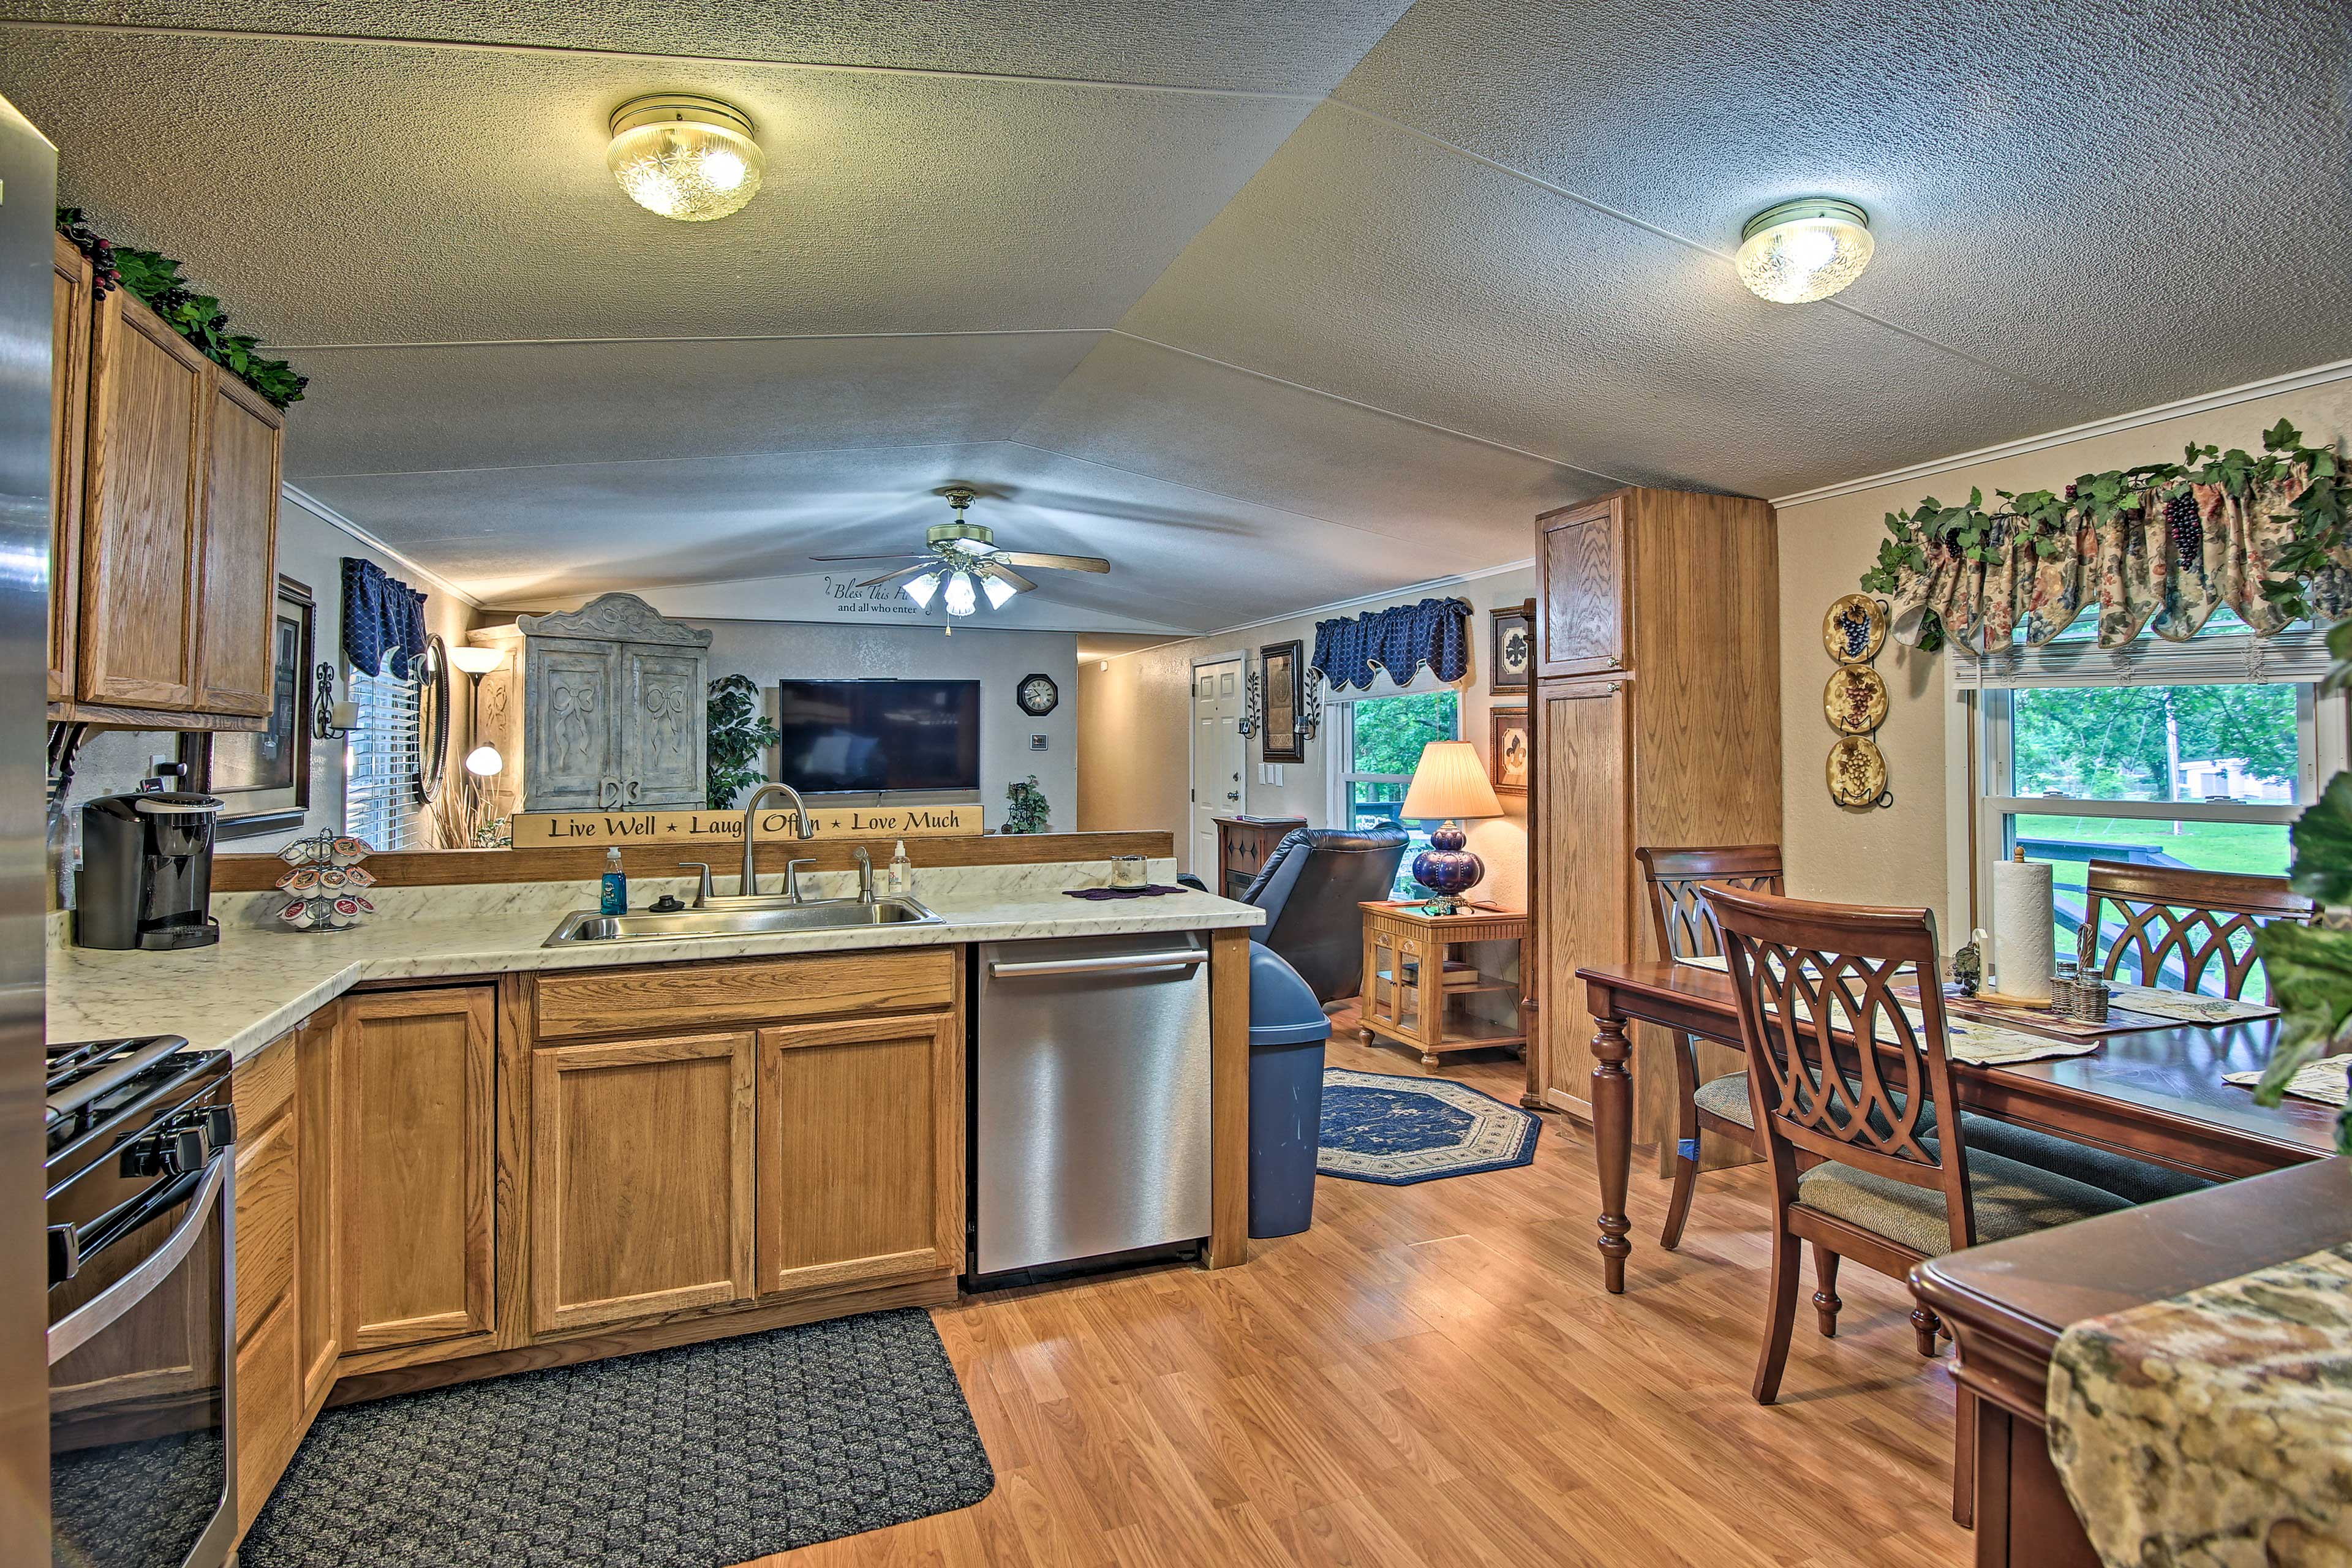 Inside the cozy interior, you'll find a fully equipped kitchen & 2 living areas.